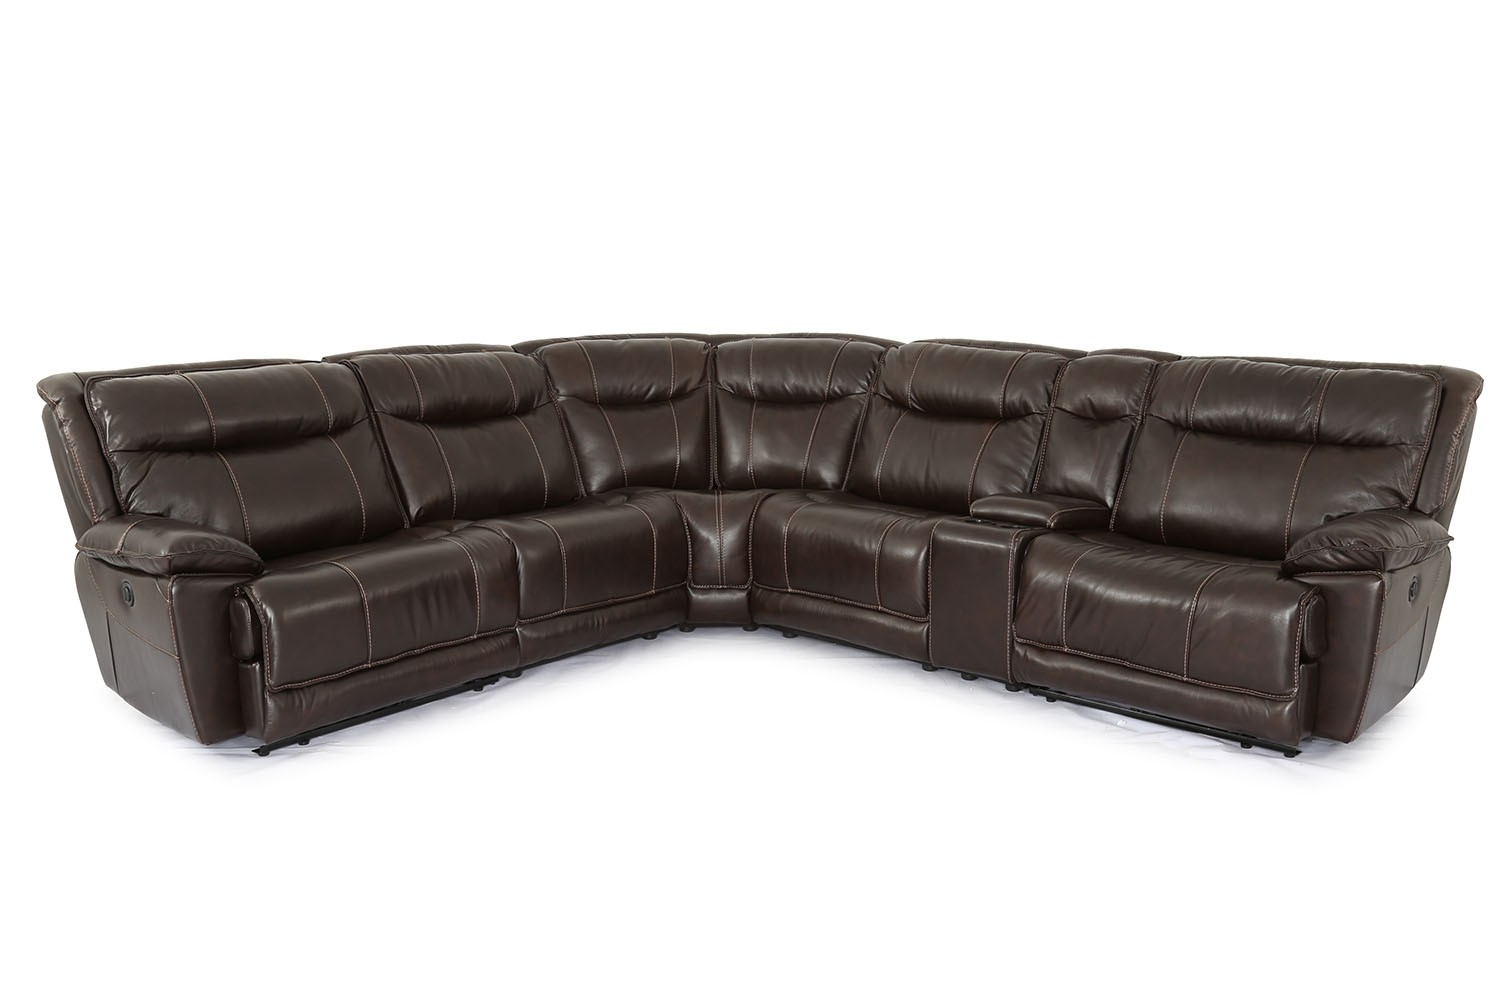 Genial Boba 6 Piece Sectional Media Image 1